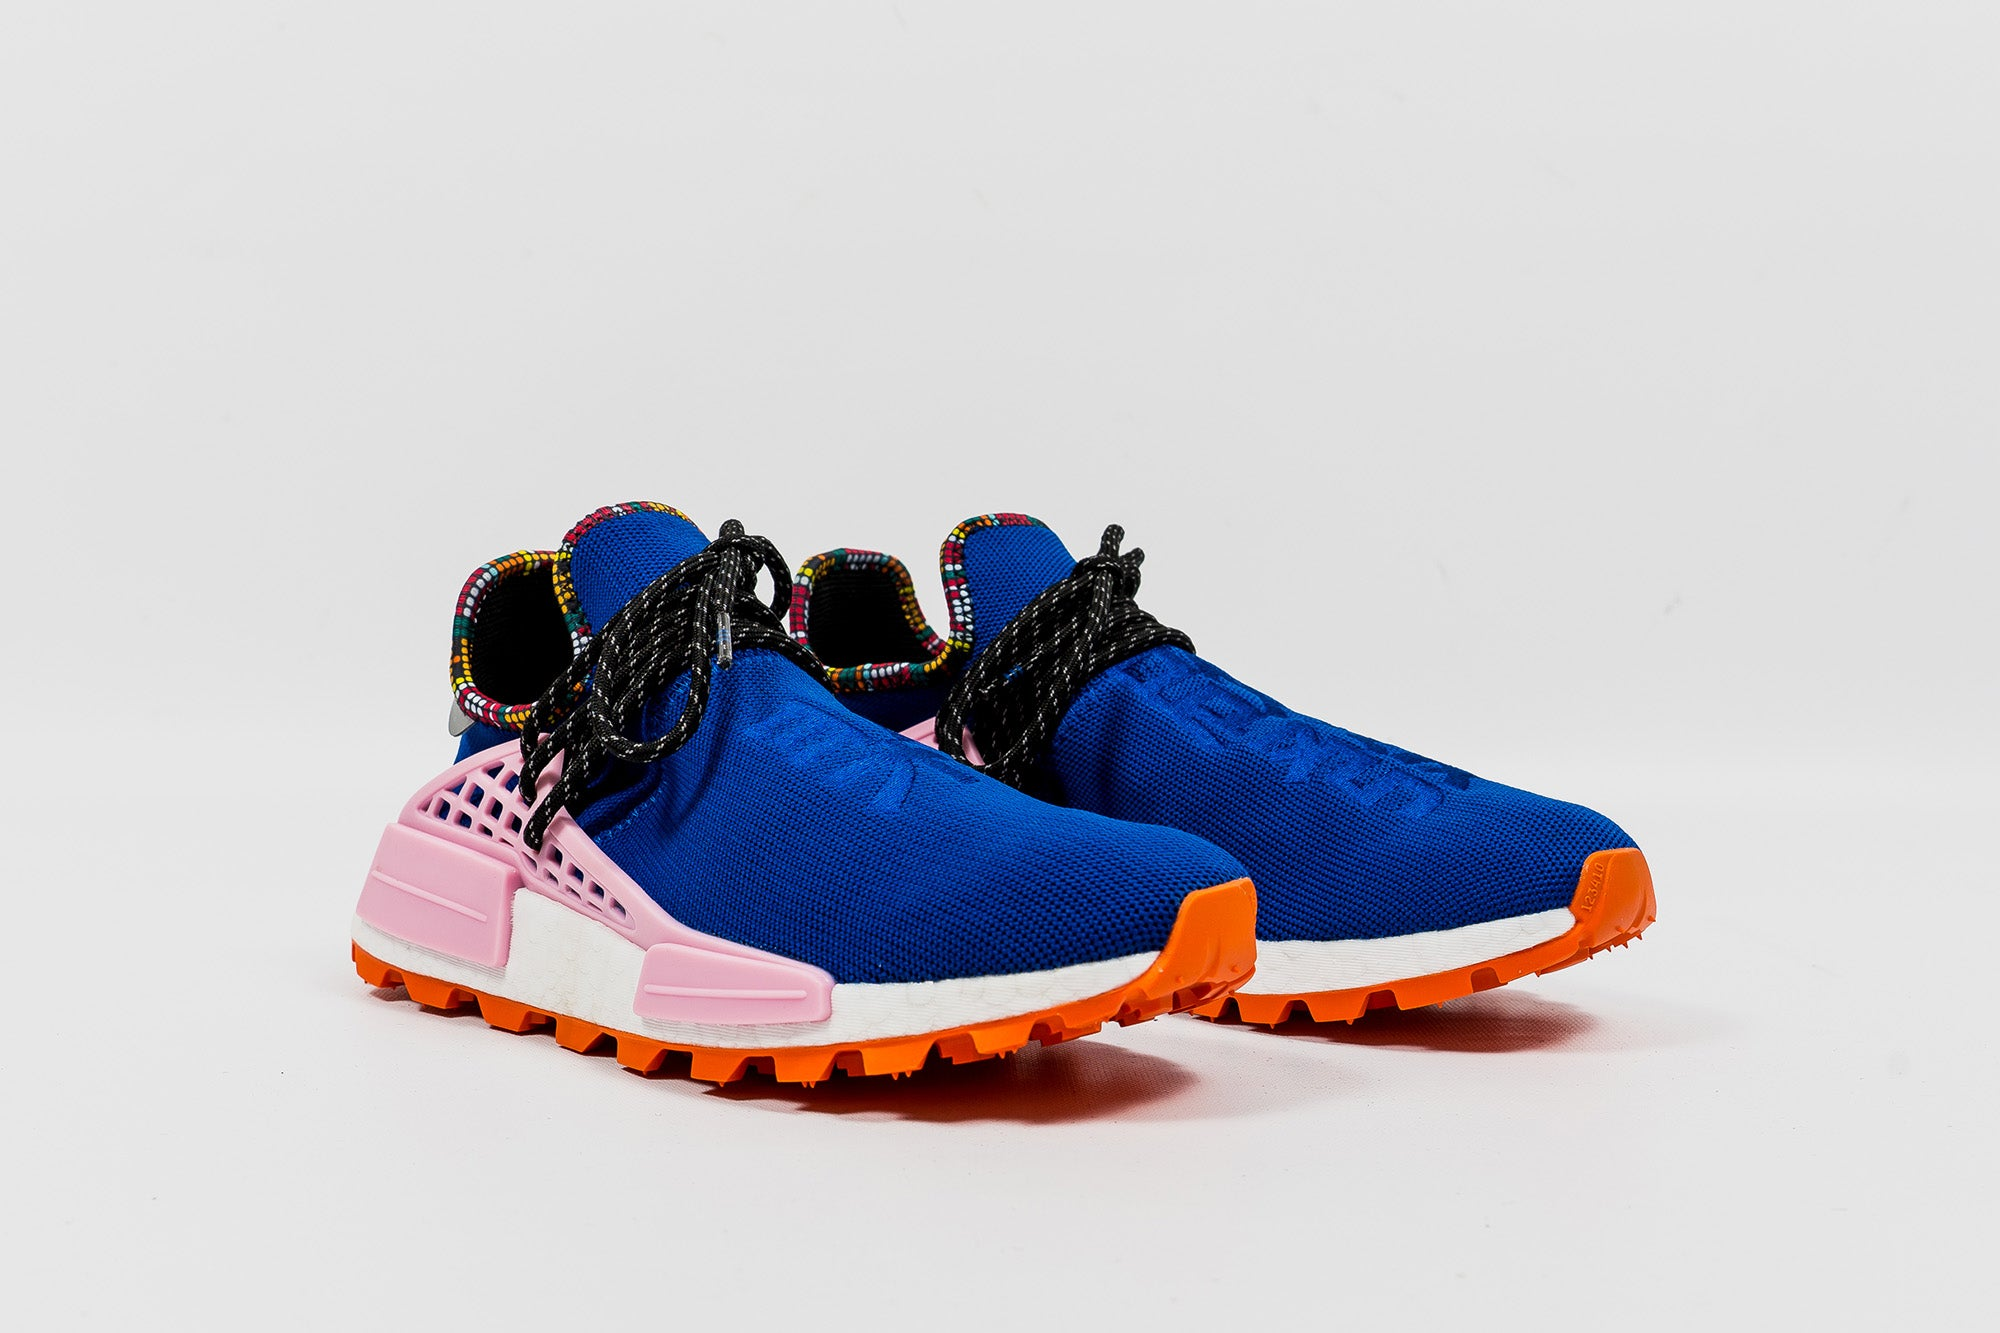 040c59b4d ADIDAS ORIGINALS X PHARRELL WILLAMS SOLAR HU NMD